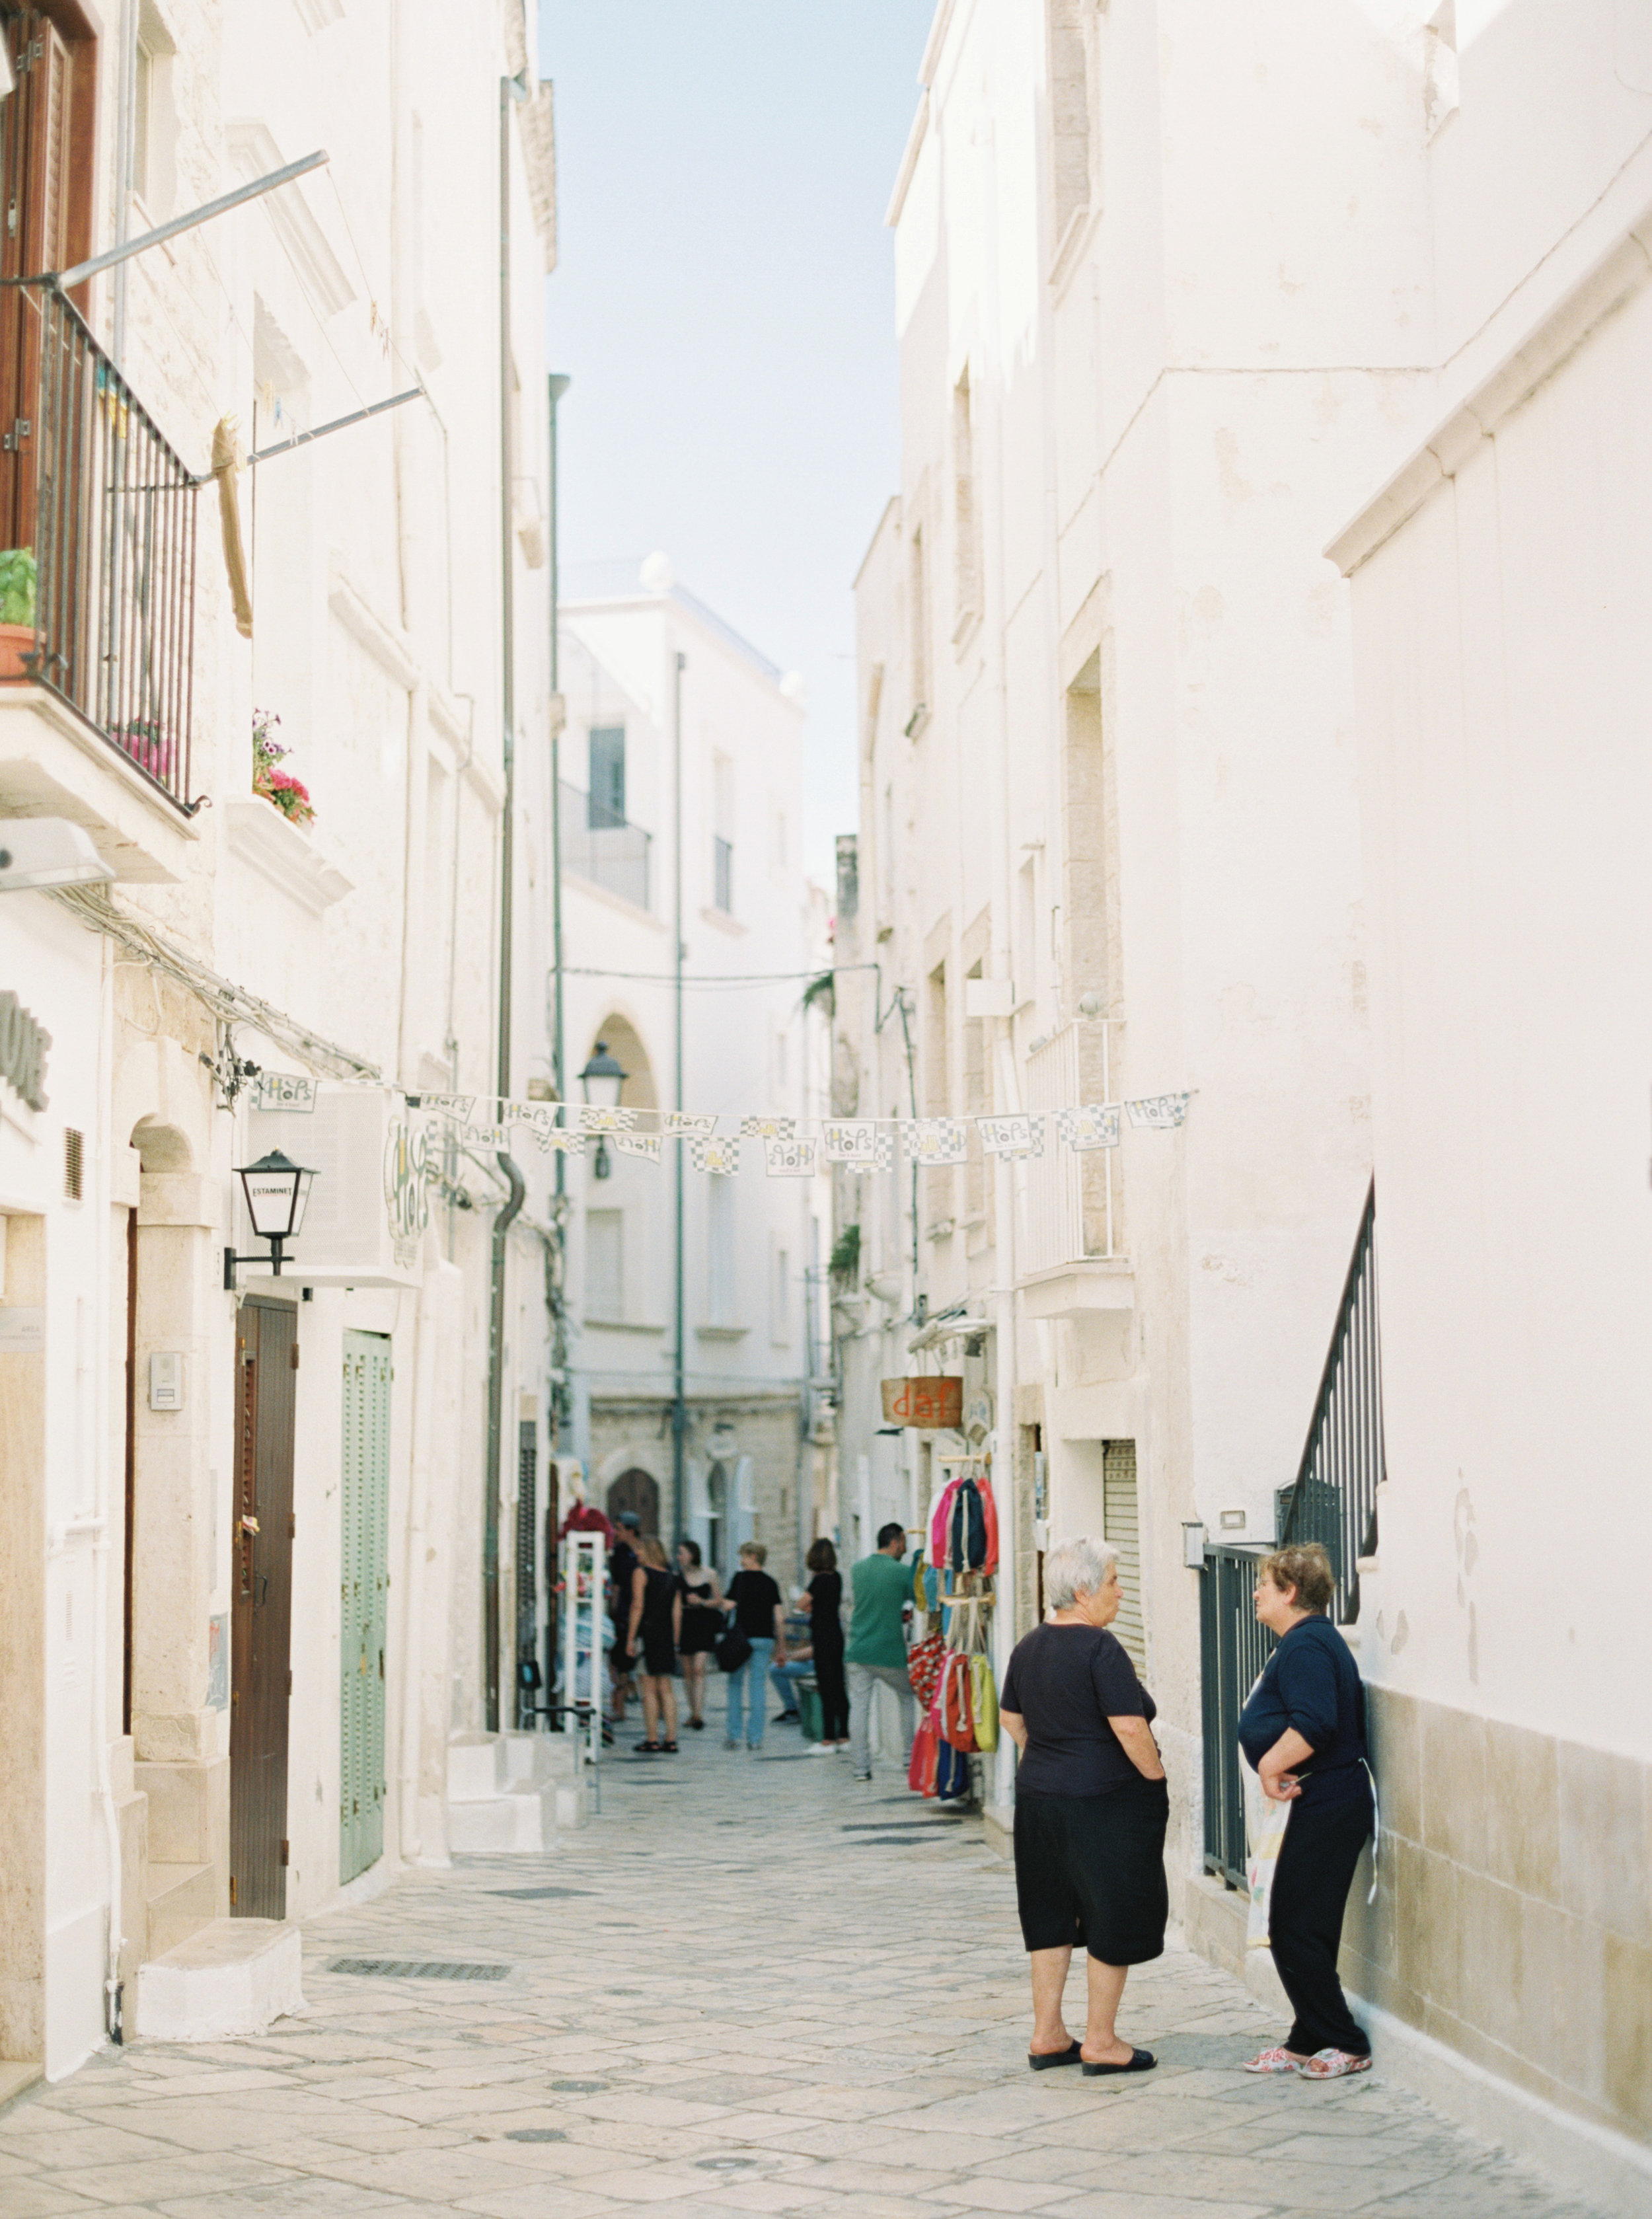 Streets of Polignano a Mare, Italy - photographed by Tracy Enoch, planned and designed by Meggie Francisco Events.